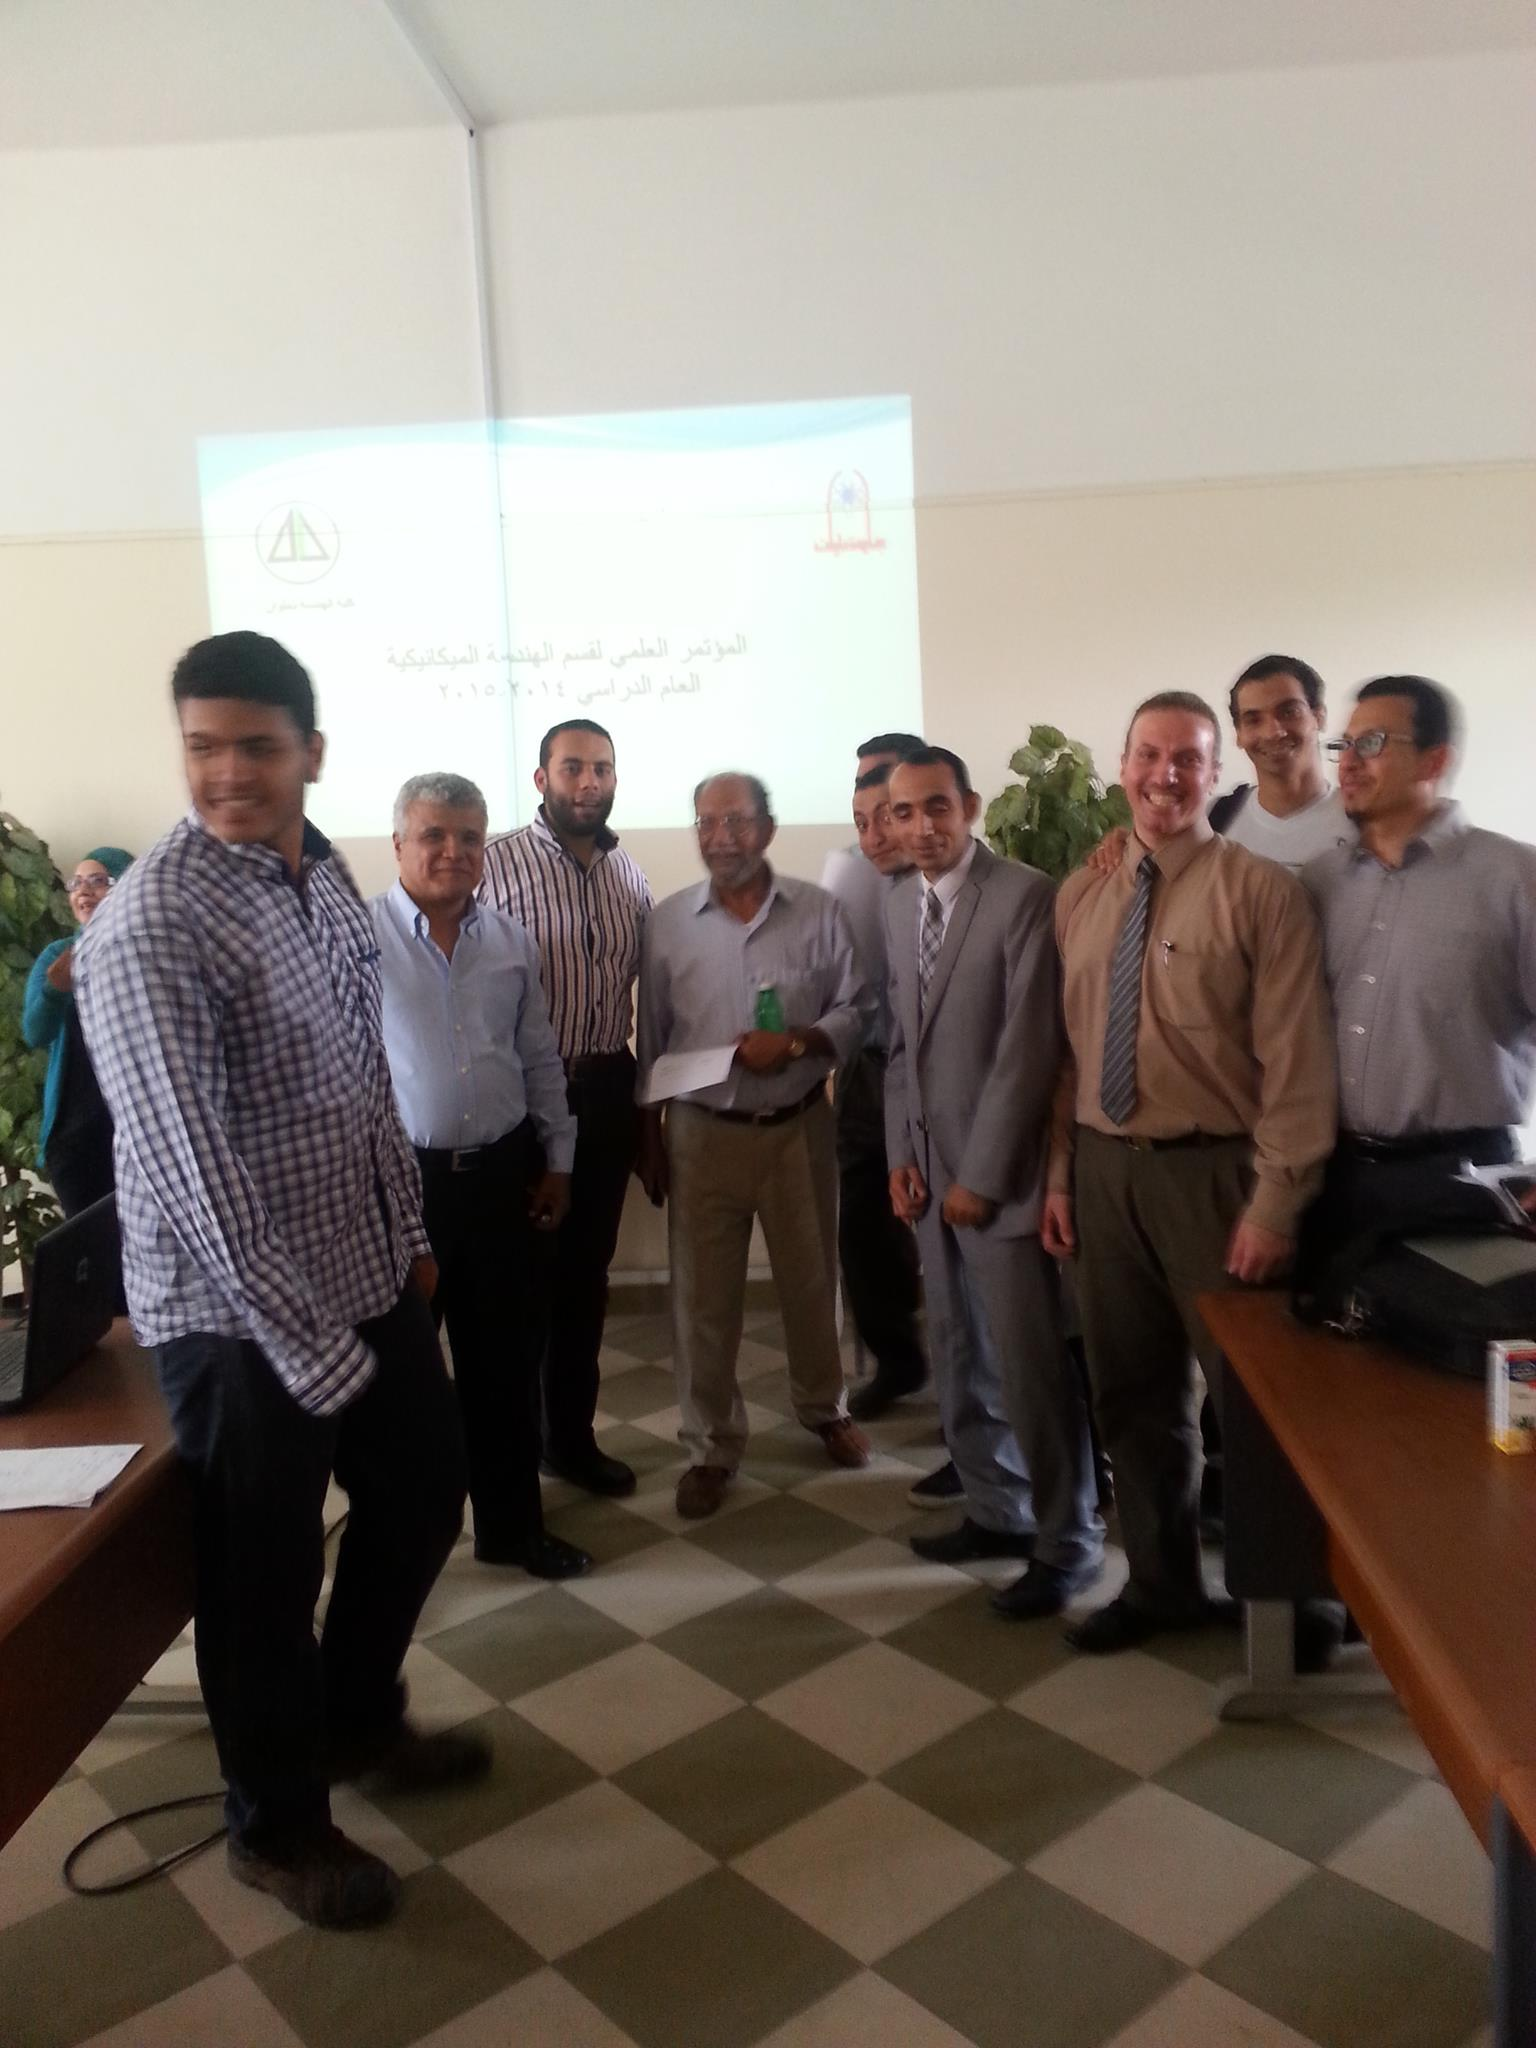 Annual Scientific Conference of the Department of Mechanical Engineering